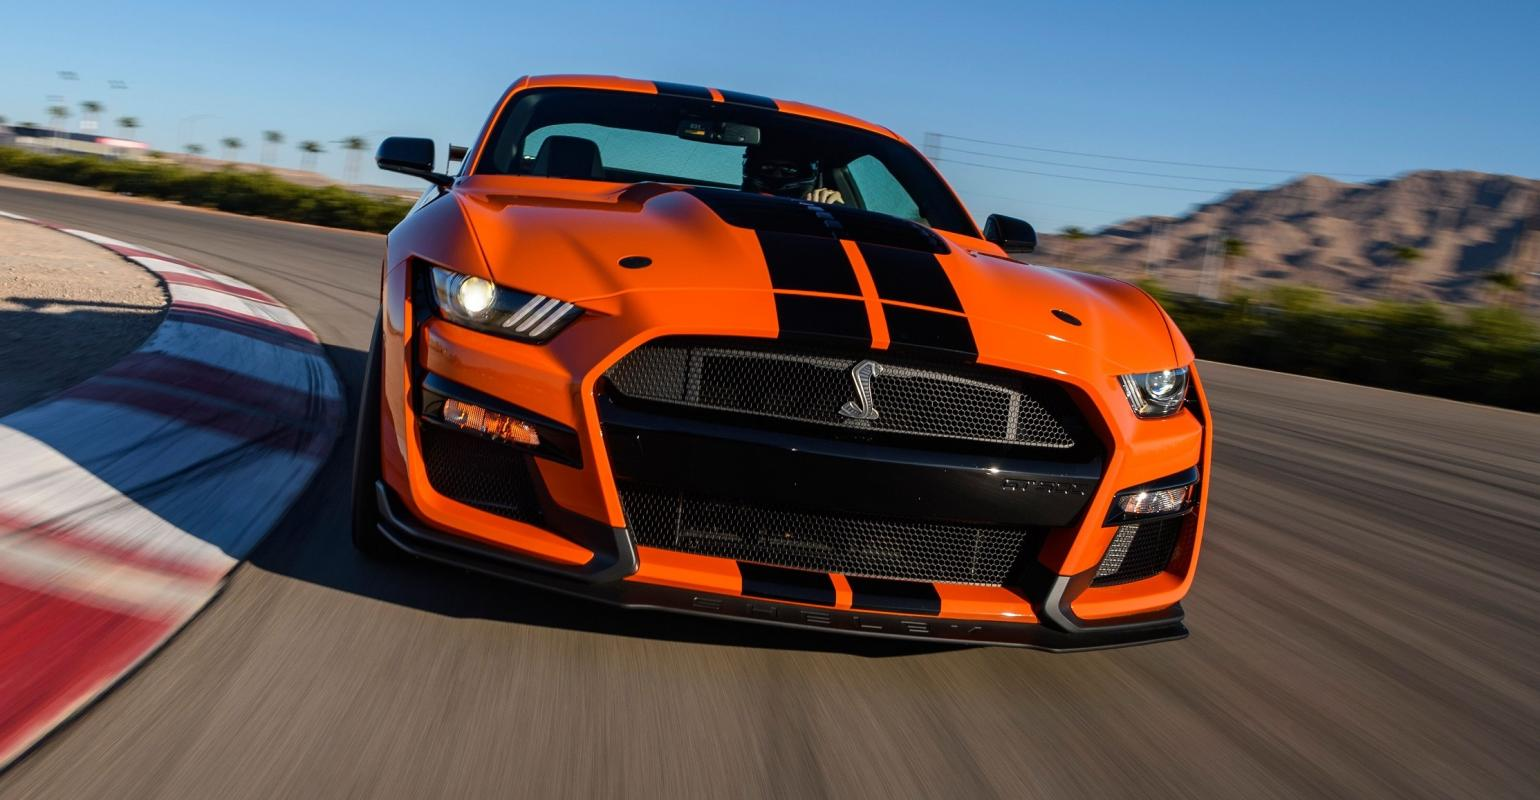 2020 Ford Mustang Shelby Gt500 Excels On Circuit Surprises On Street Wardsauto